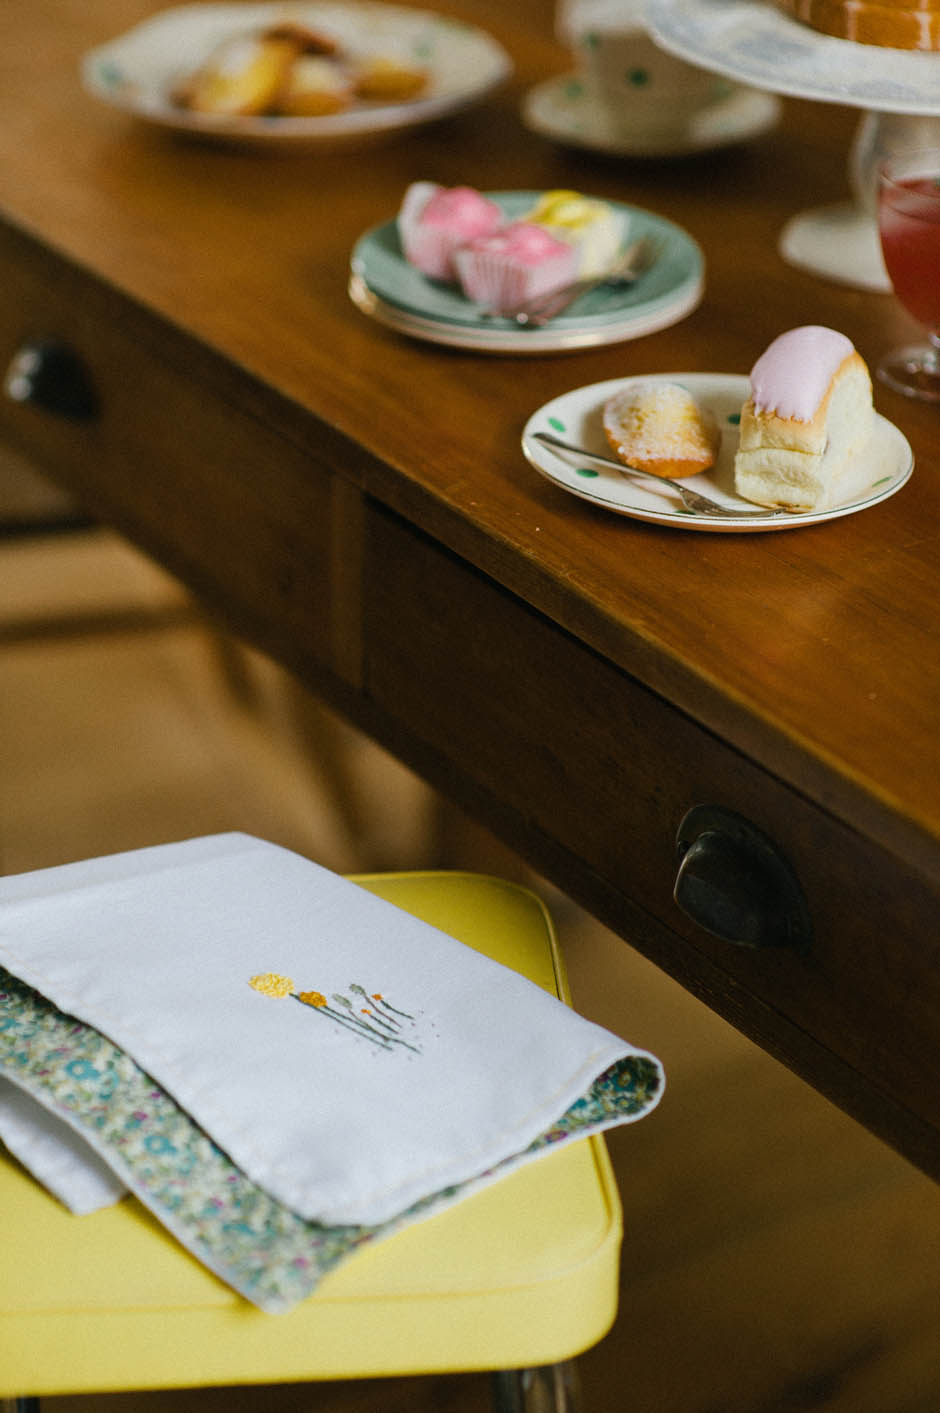 Liberty print embroidered napkins | Vintage tea | Photograph by Katharine Peachey | Apartment Apothecary